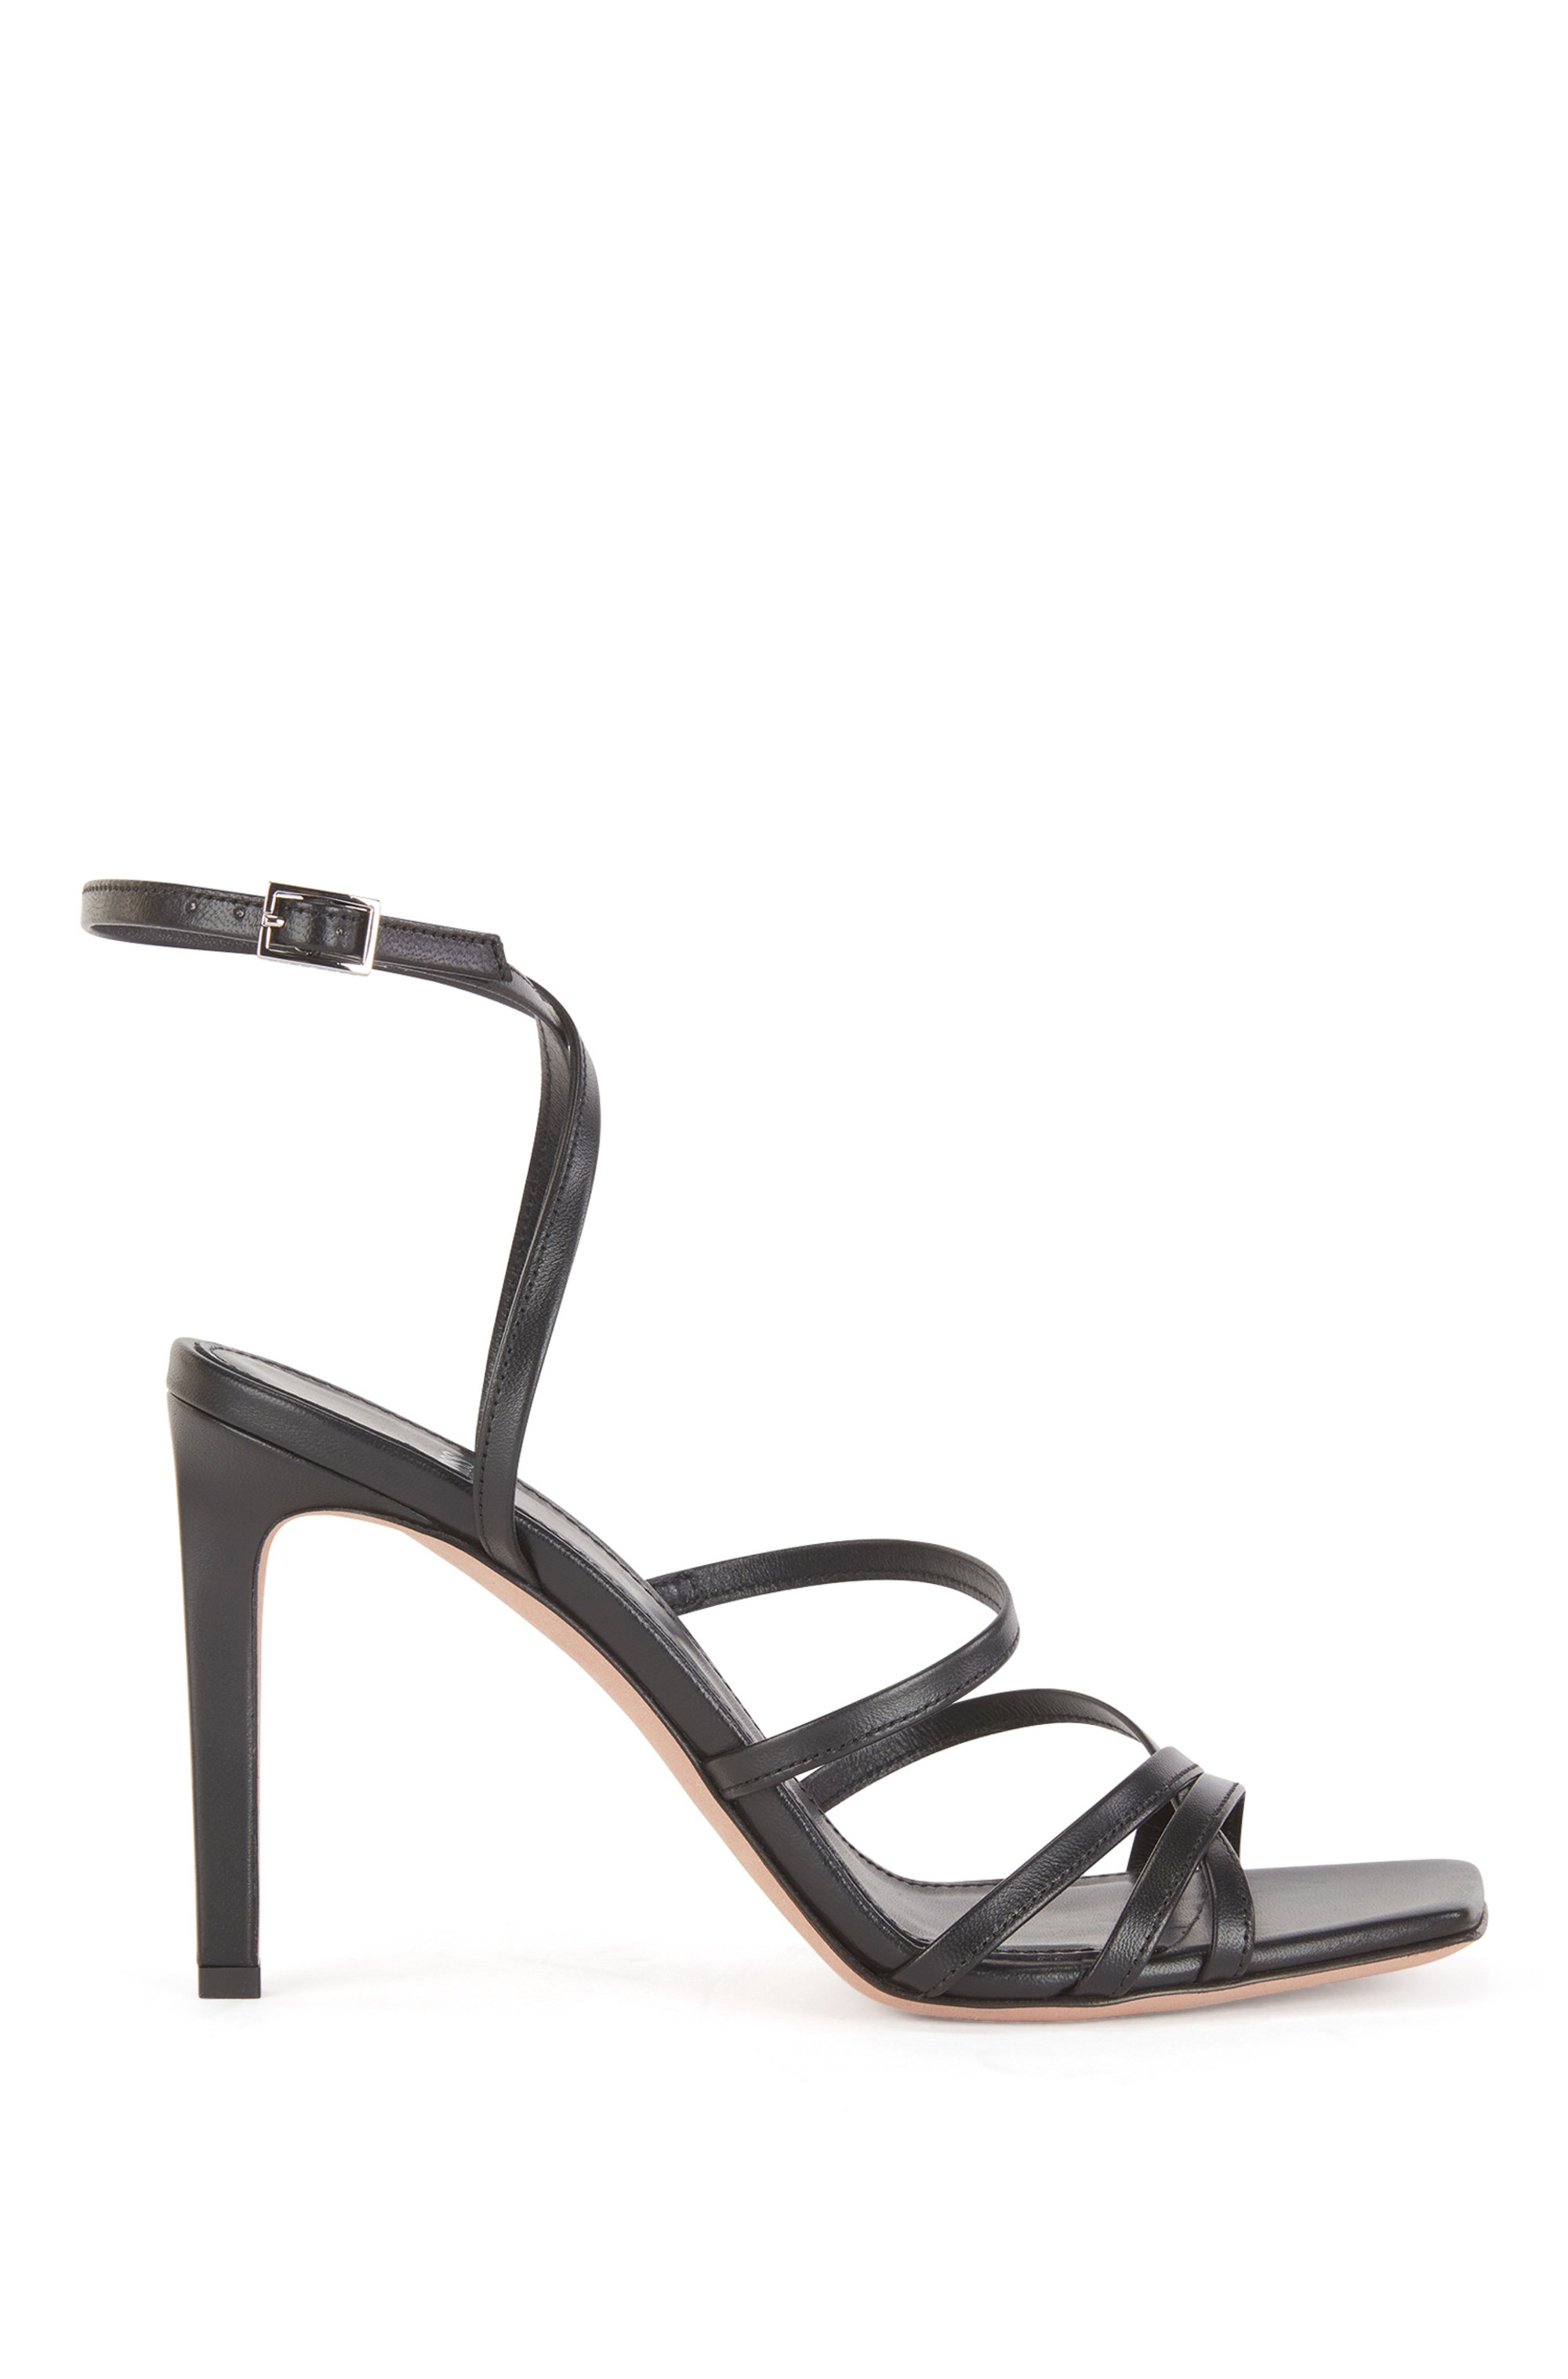 Heeled strappy sandals in Italian leather with squared toe, Black